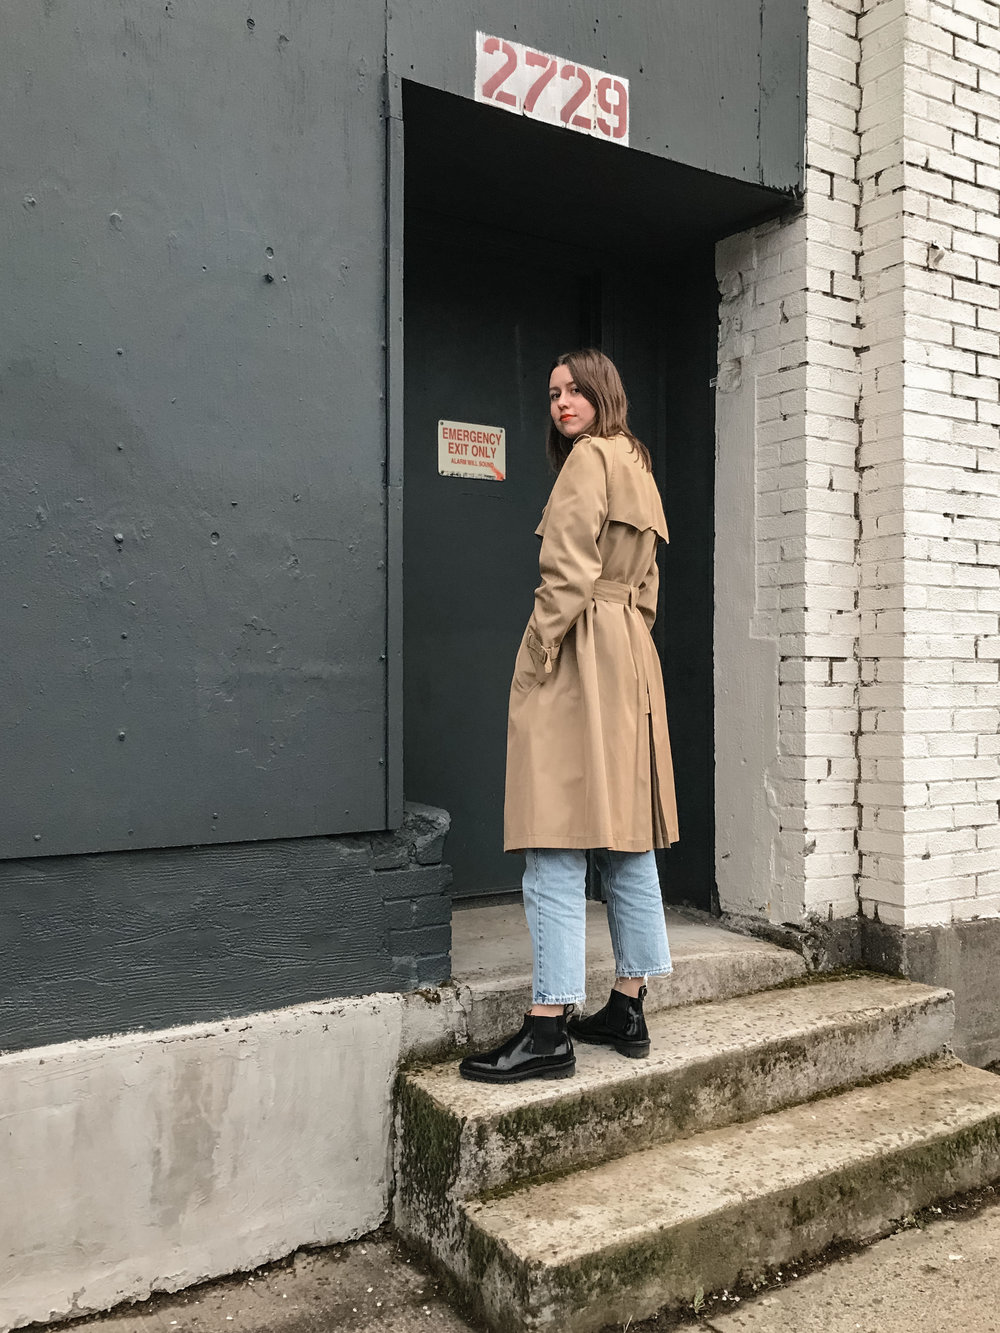 trench from goodwill, jeans = vintage levis, boots by creatures of comfort, lips from snow white